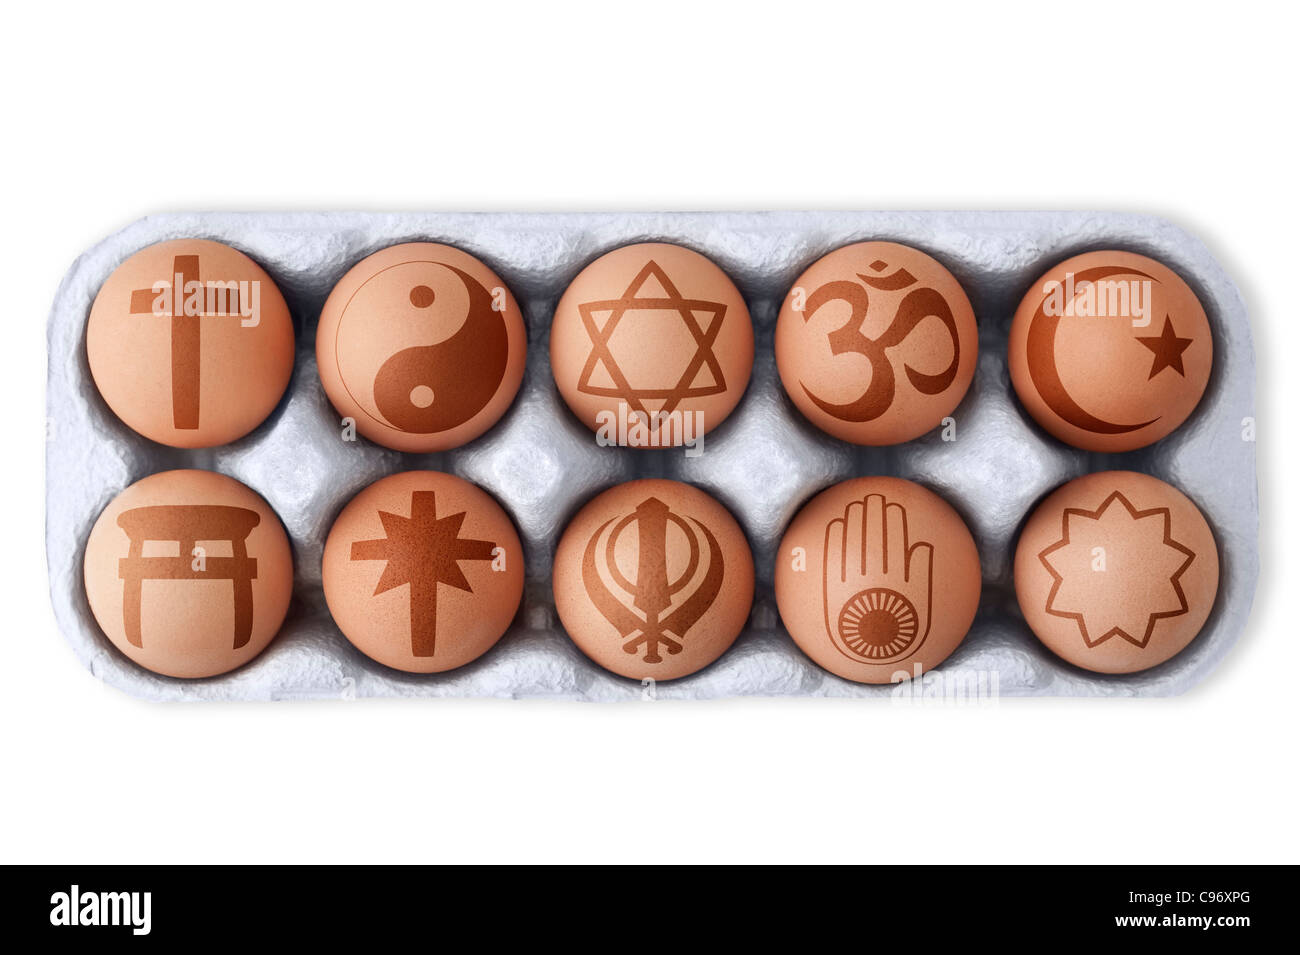 Box of eggs with different symbols of global religious doctrines printed on each one.  White background, Cutout Stock Photo